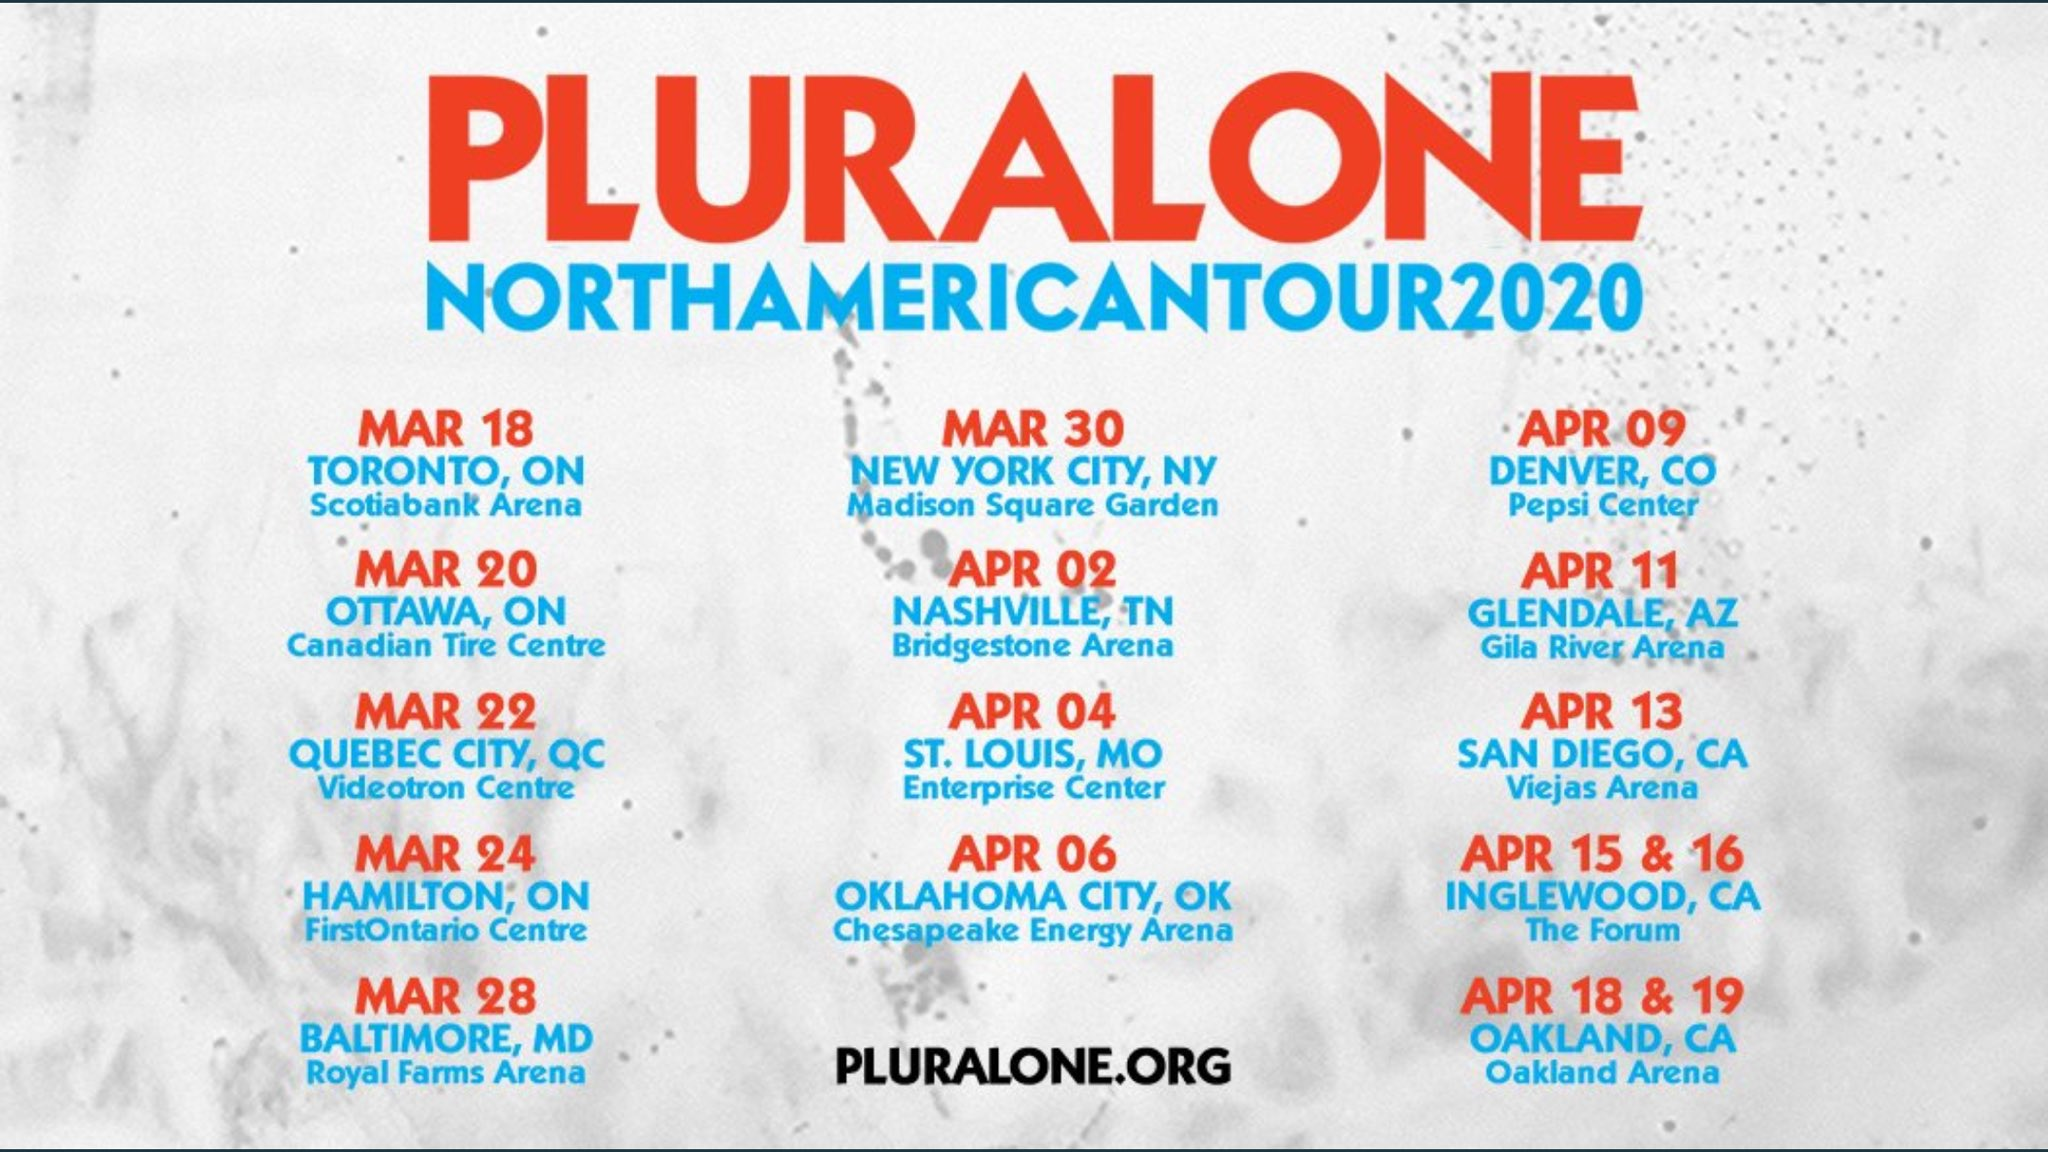 Josh Klinghoffer Fansite On Twitter Pluralone Shows With Pearl Jam Presale Tickets On Sale This Thursday January 23 Public On Sale January 24 We Re So There Thanks To Rhcplivearchive For The